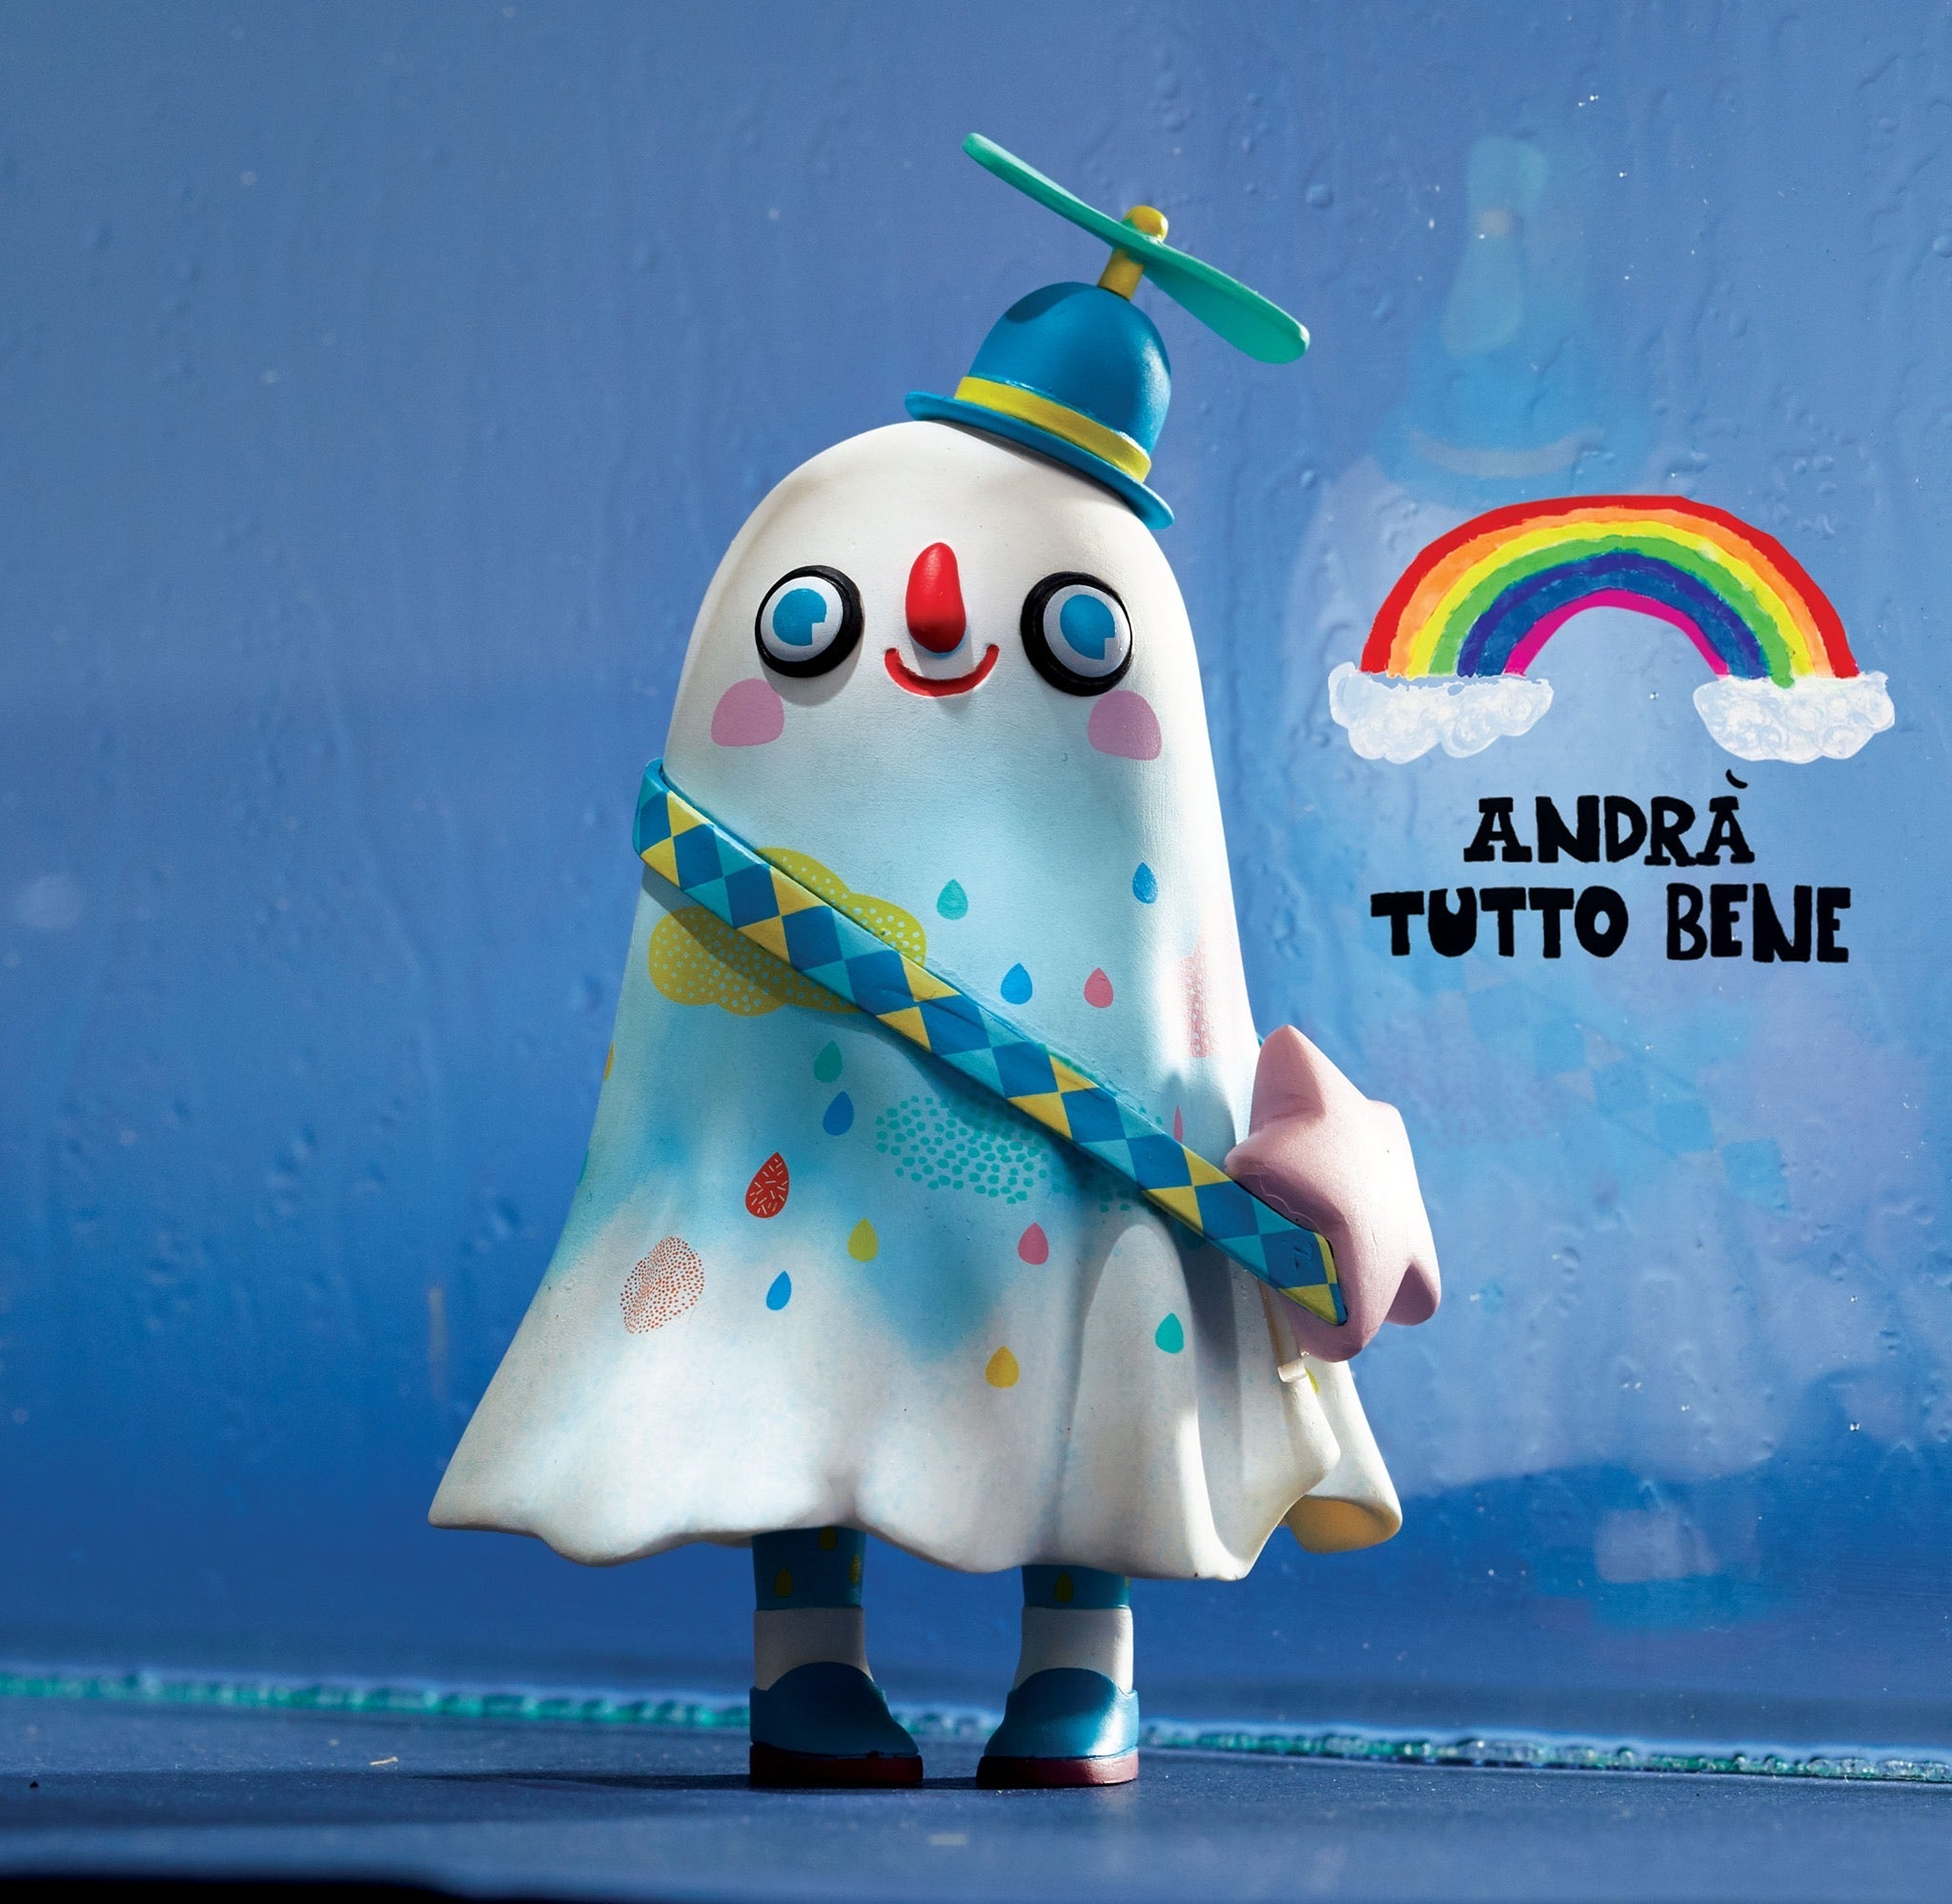 Little White - Andra Tutto Bene by Zu & Pi - Strangecat Toys Exclusive